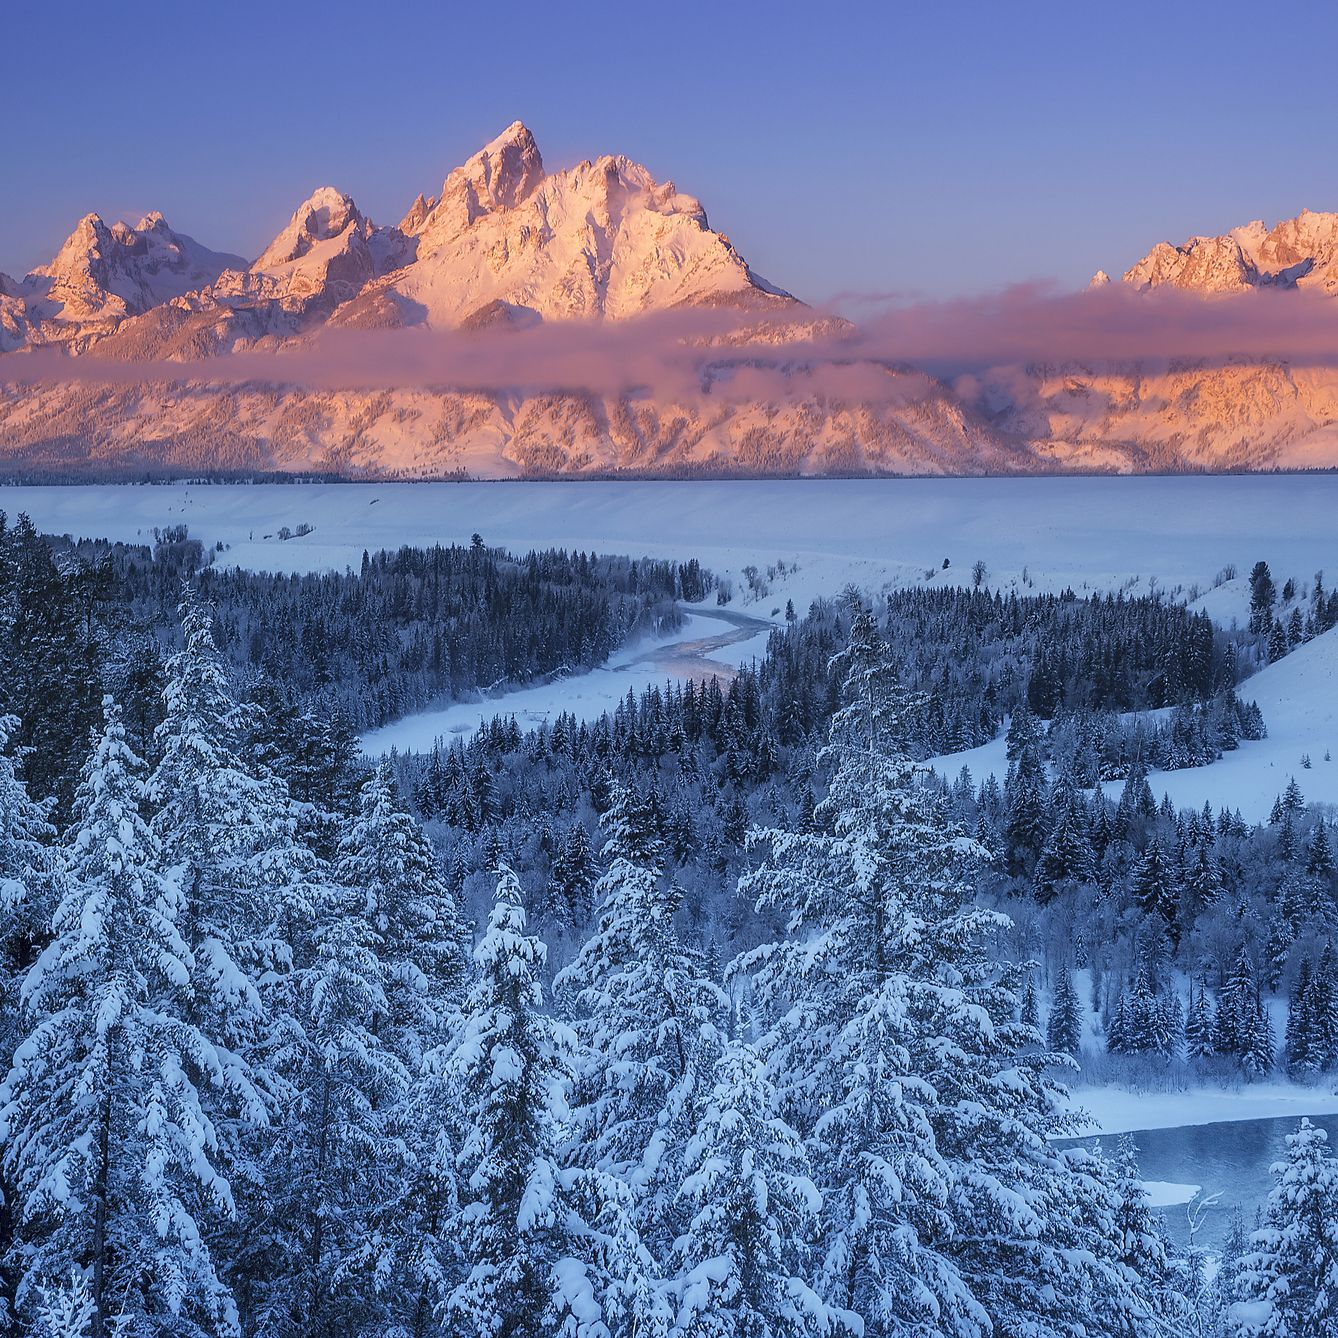 The Best National Parks to Visit for Christmas